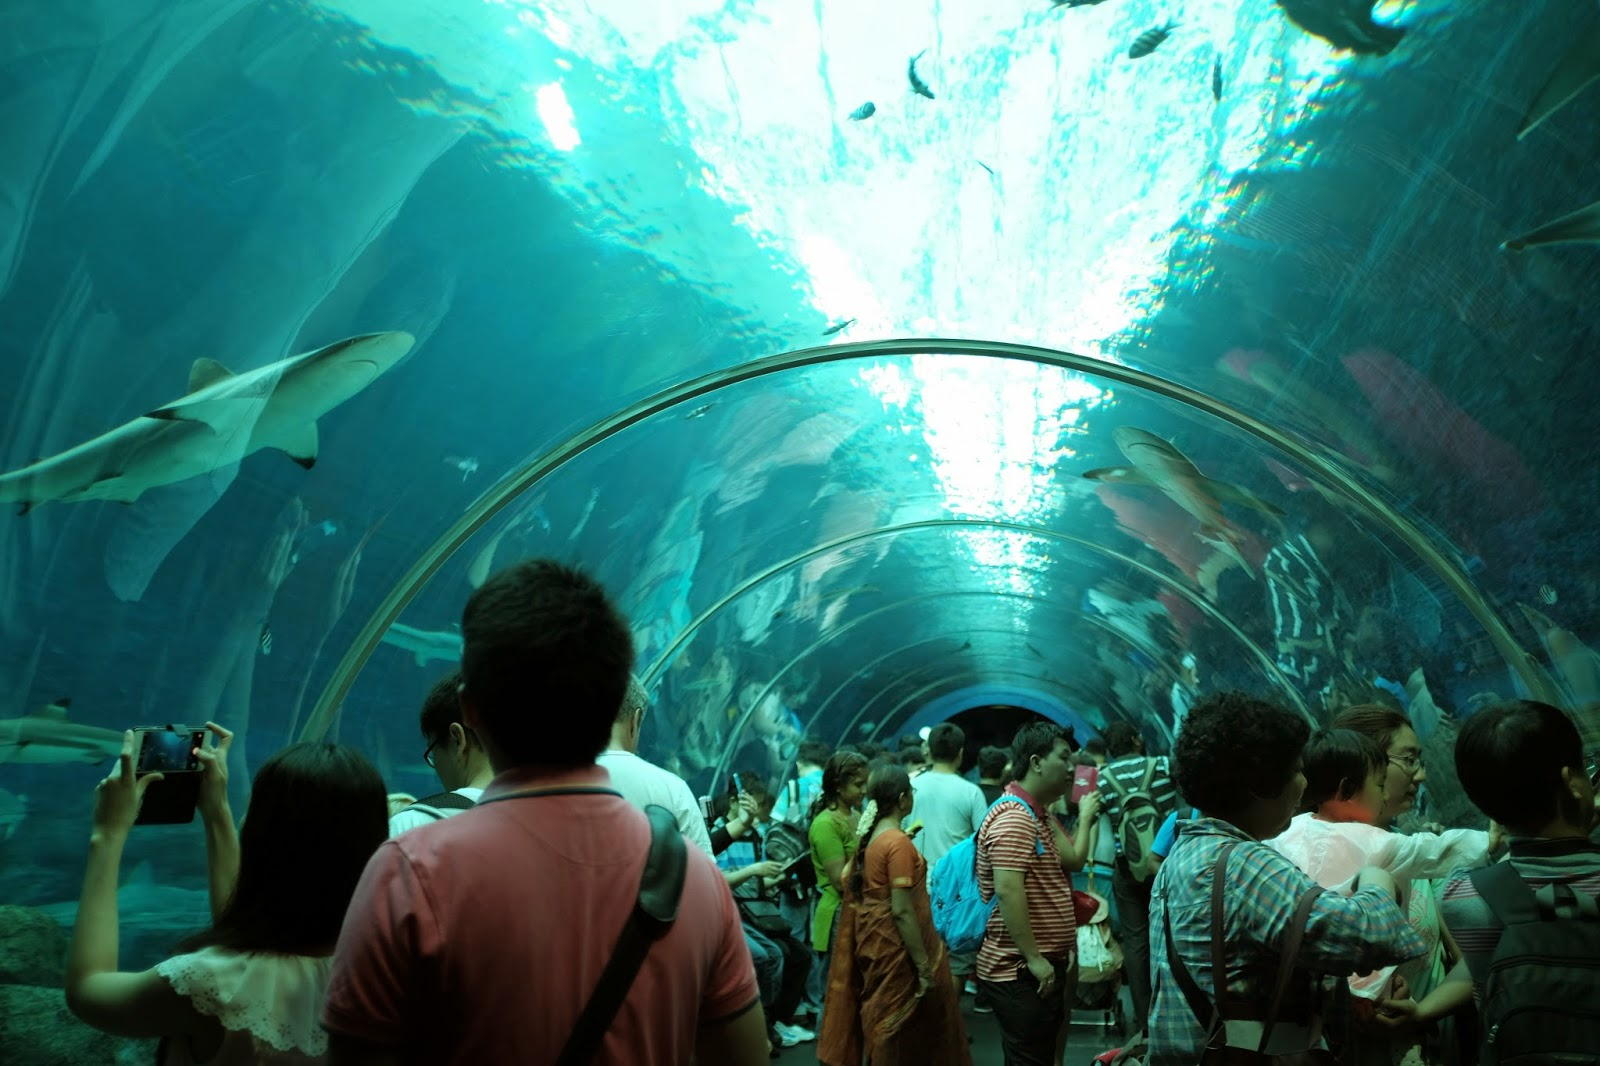 Fish aquarium in sentosa - At The Entrance You Ll Go Through A Tunnel Where You Can See Sharks Swimming By Photography Within Aquariums Is A Big Challenge Fishes Swim Fast So You Ll